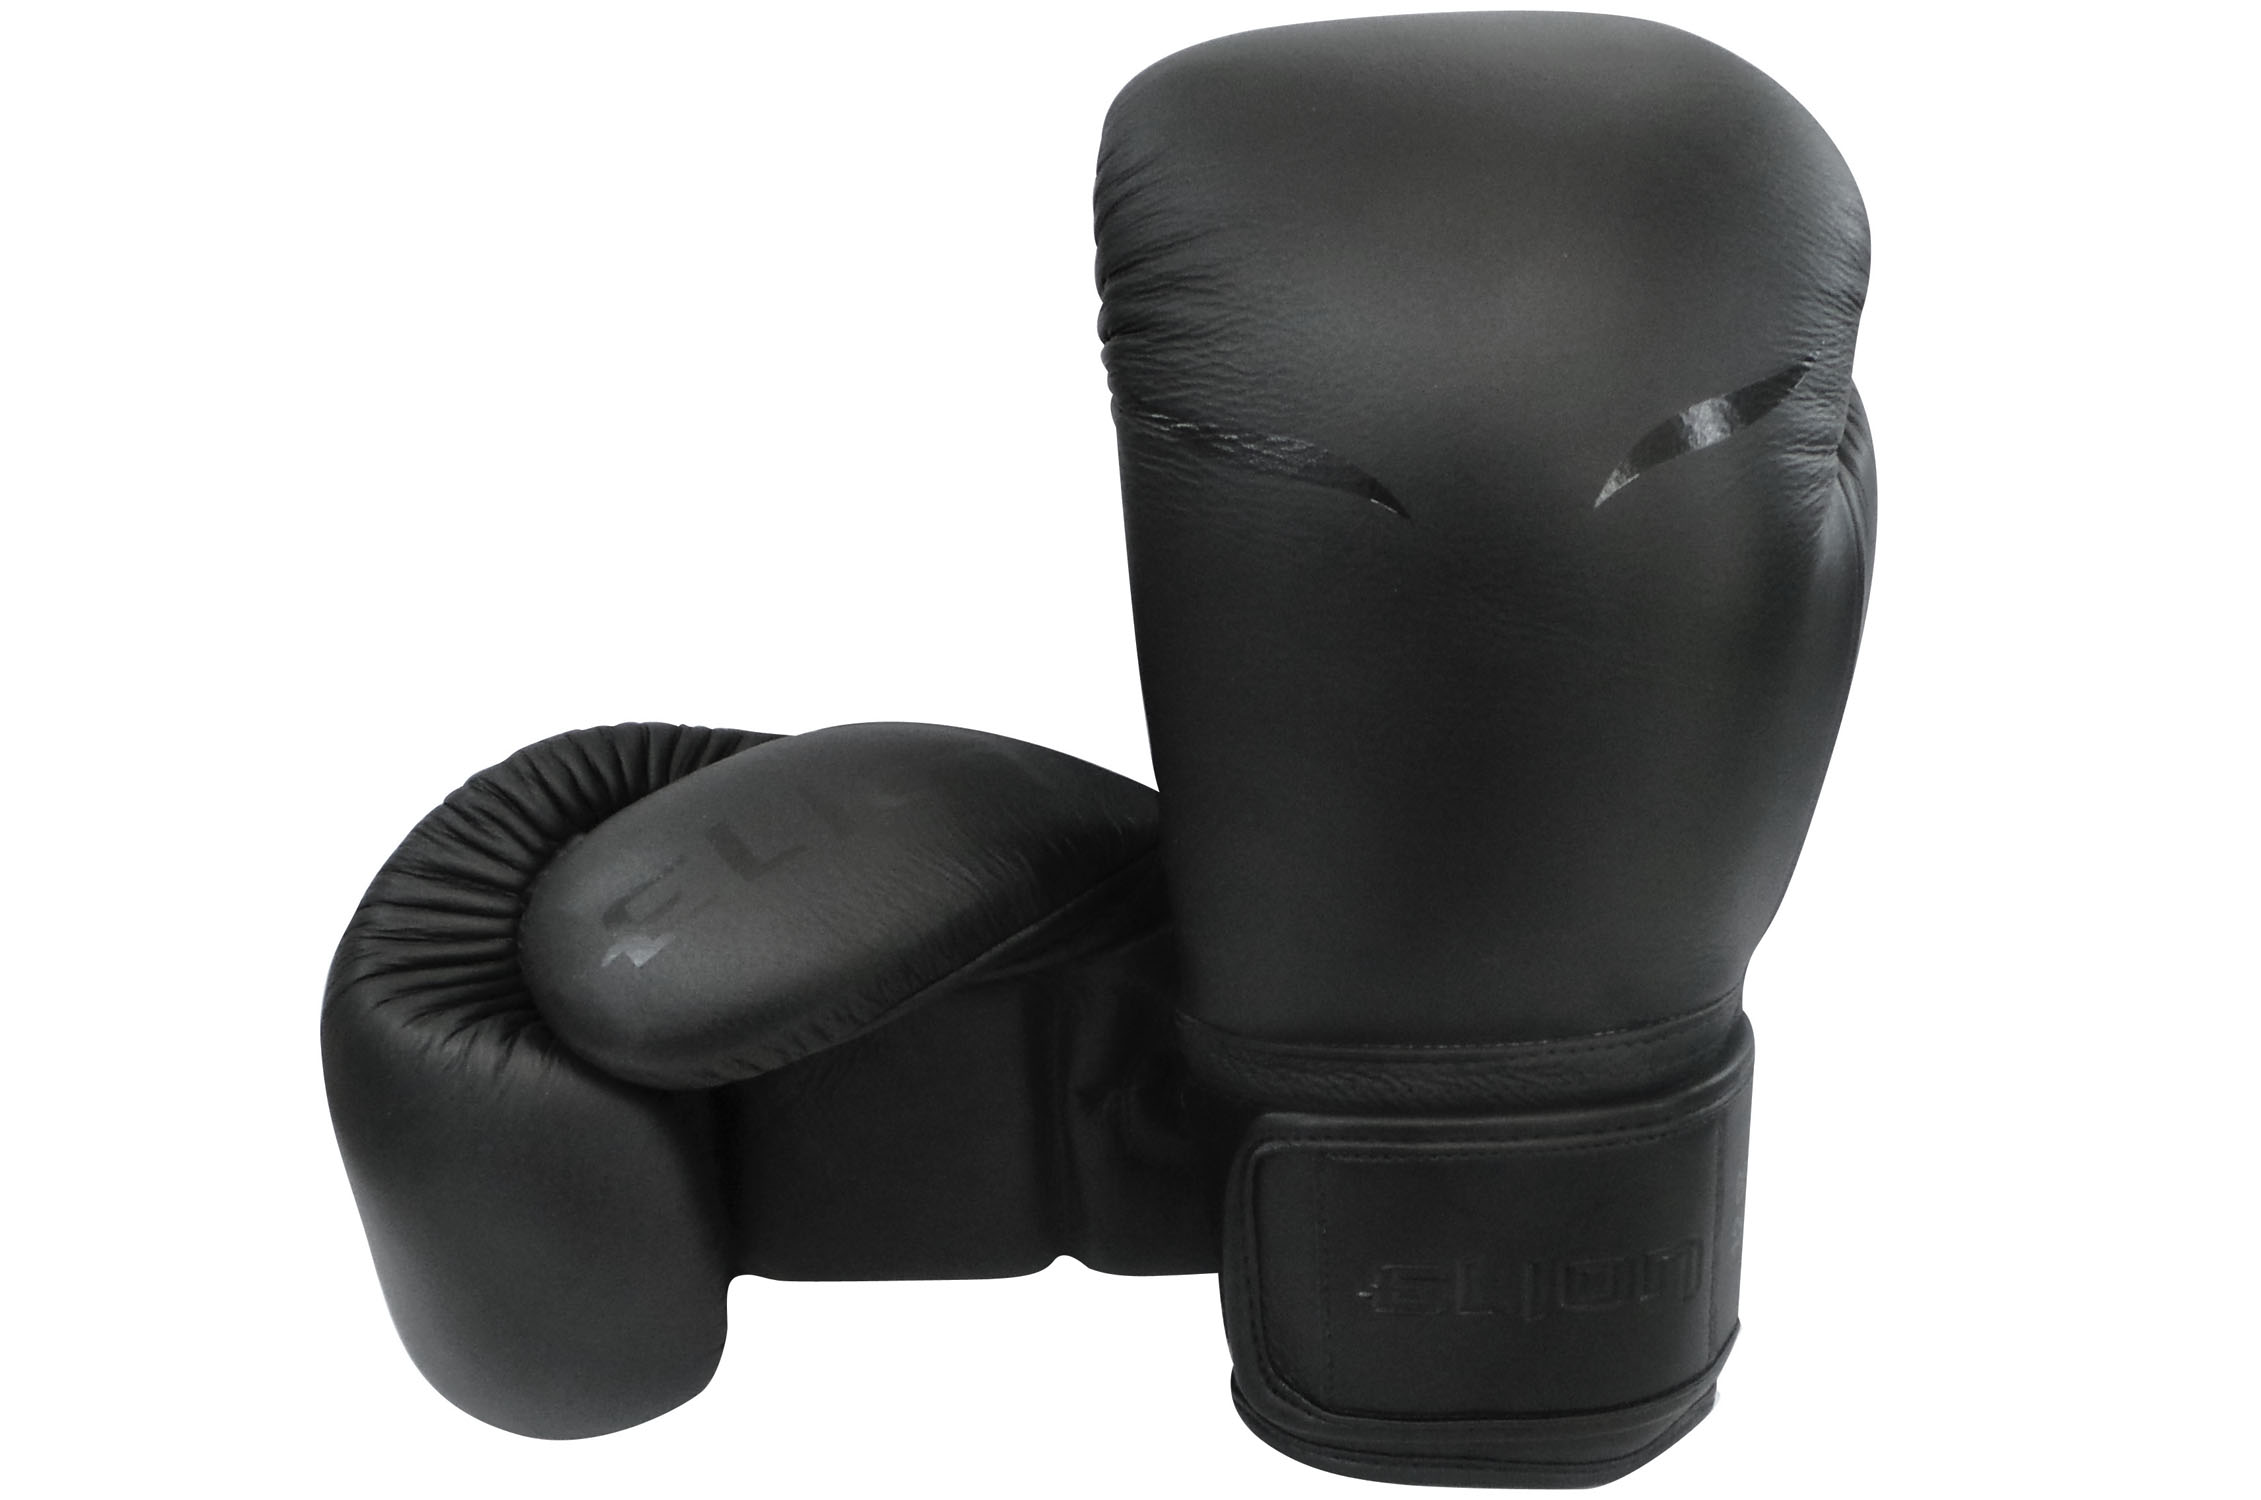 gants de boxe entrainement cuir mat black elion. Black Bedroom Furniture Sets. Home Design Ideas